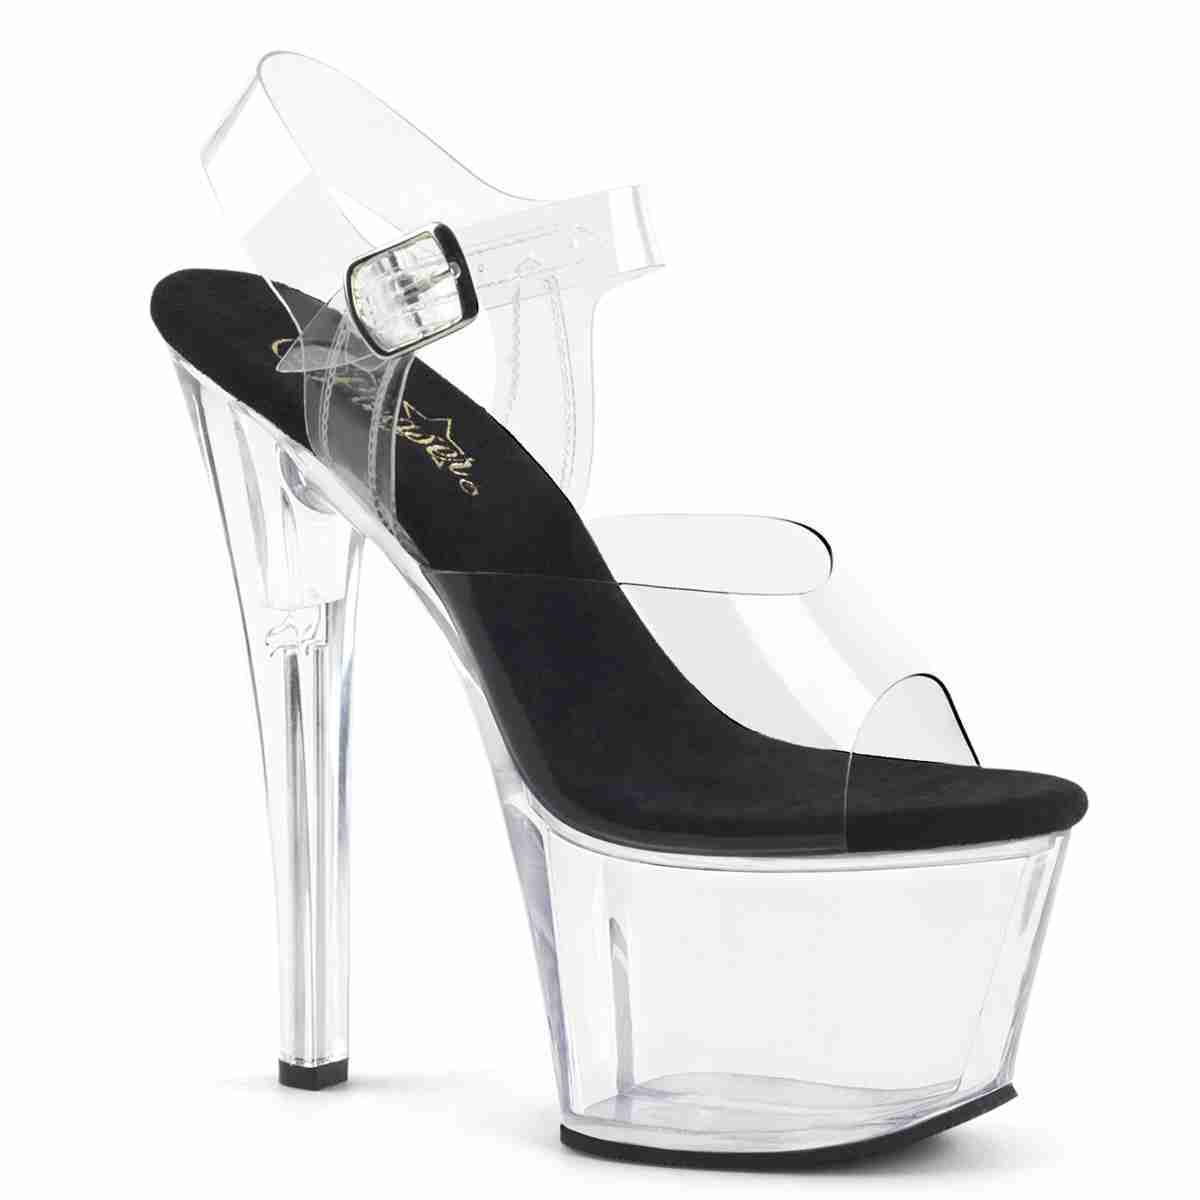 PLEASER Sky-308 7 Inch Heel Platform Shoe Clear-Black Clear